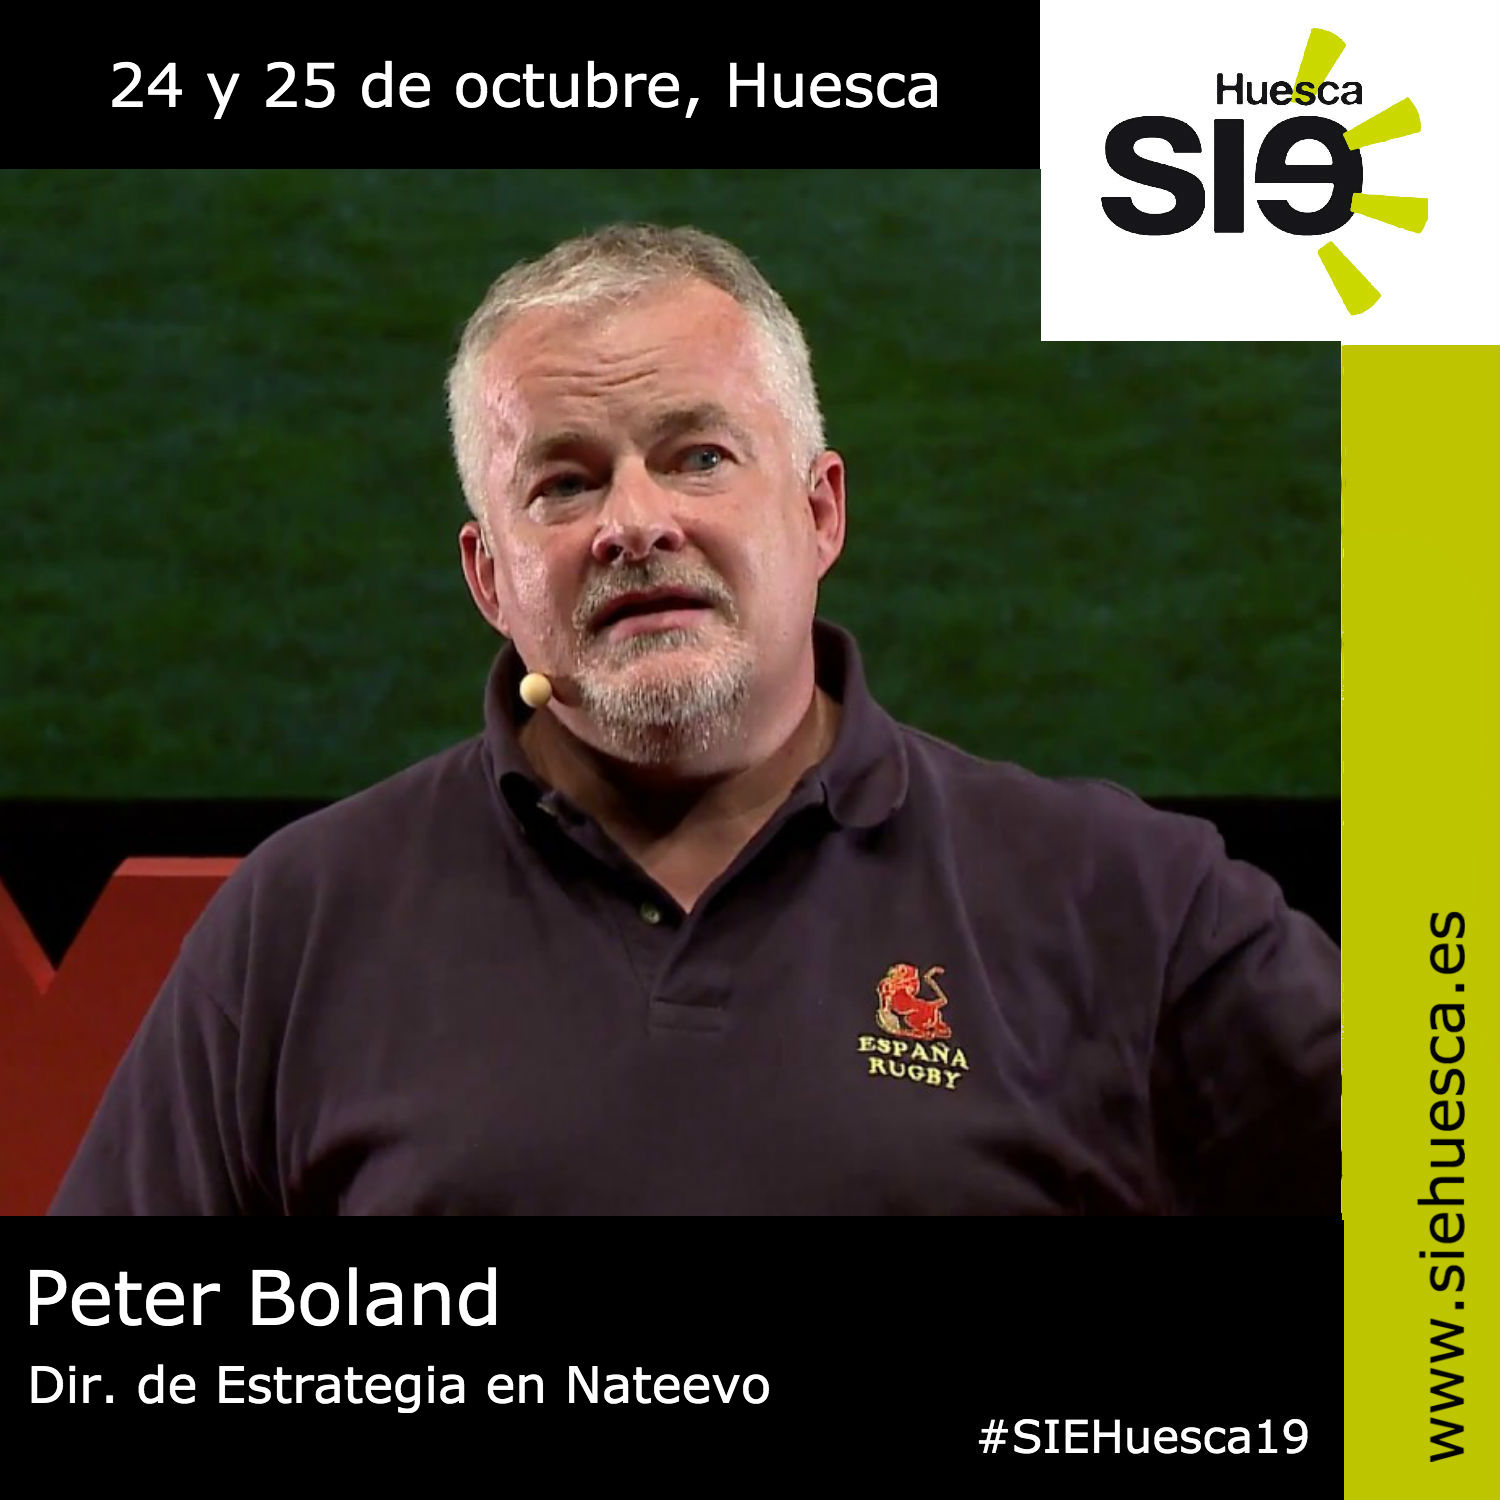 Peter Boland